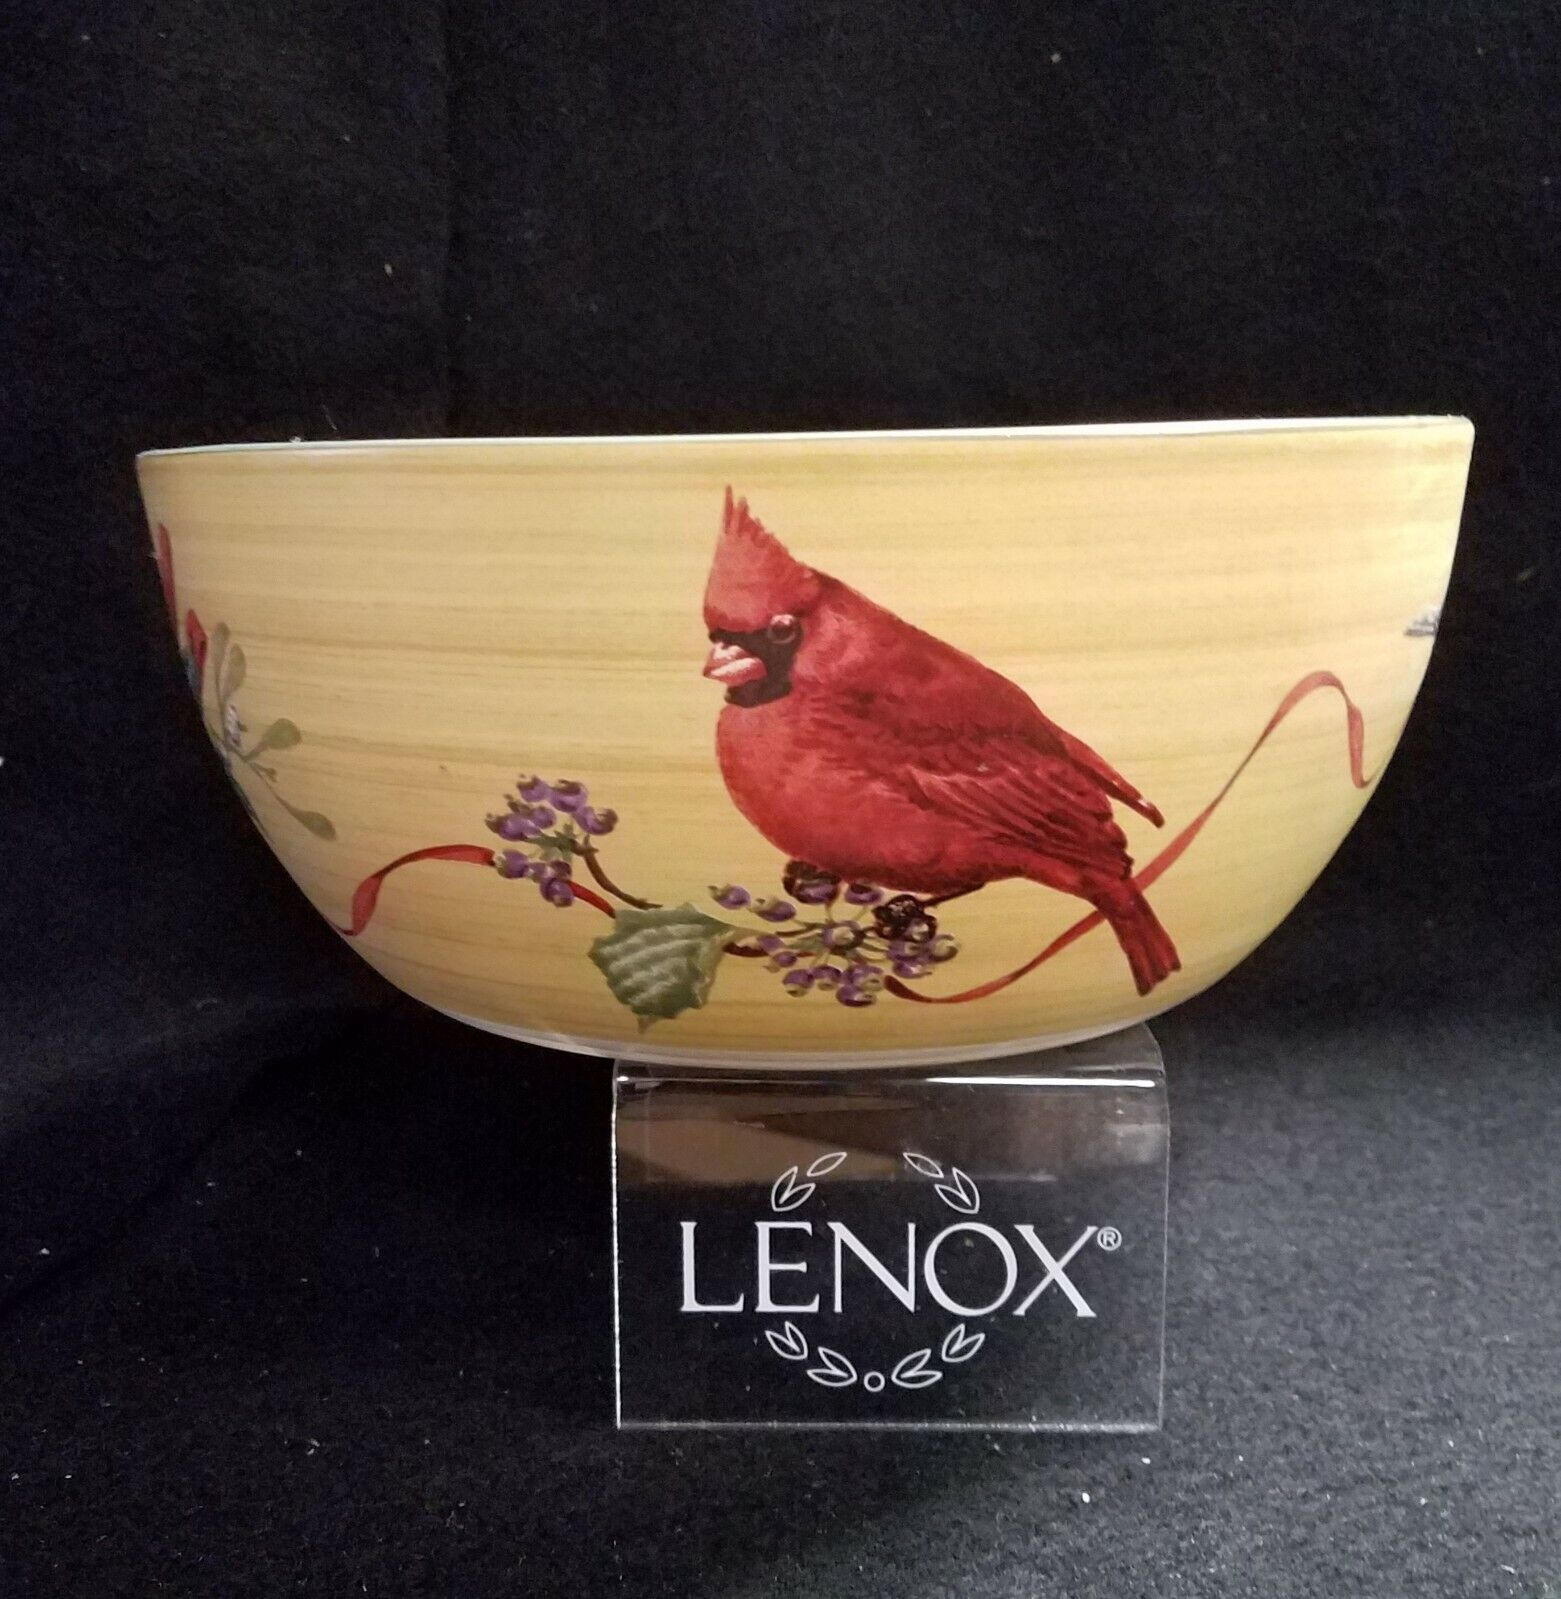 LENOX WINTER GREETINGS Large Serving Bowl 10 Made In Portugal - $129.95